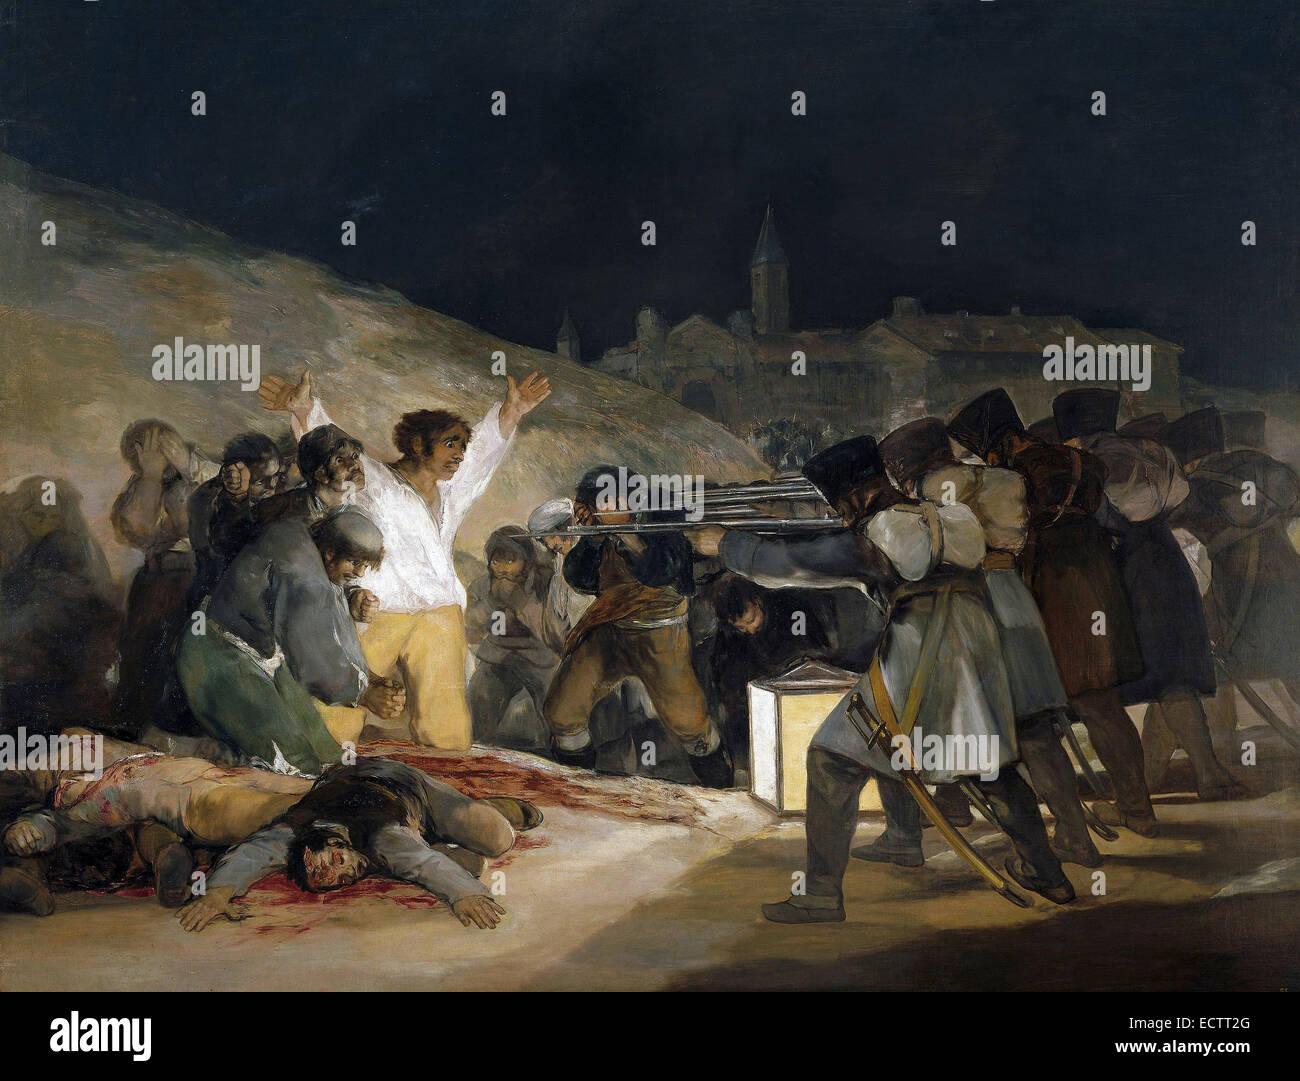 The Third of May 1808 by Francisco Goya, showing Spanish resisters being executed by Napoleon's troops. - Stock Image